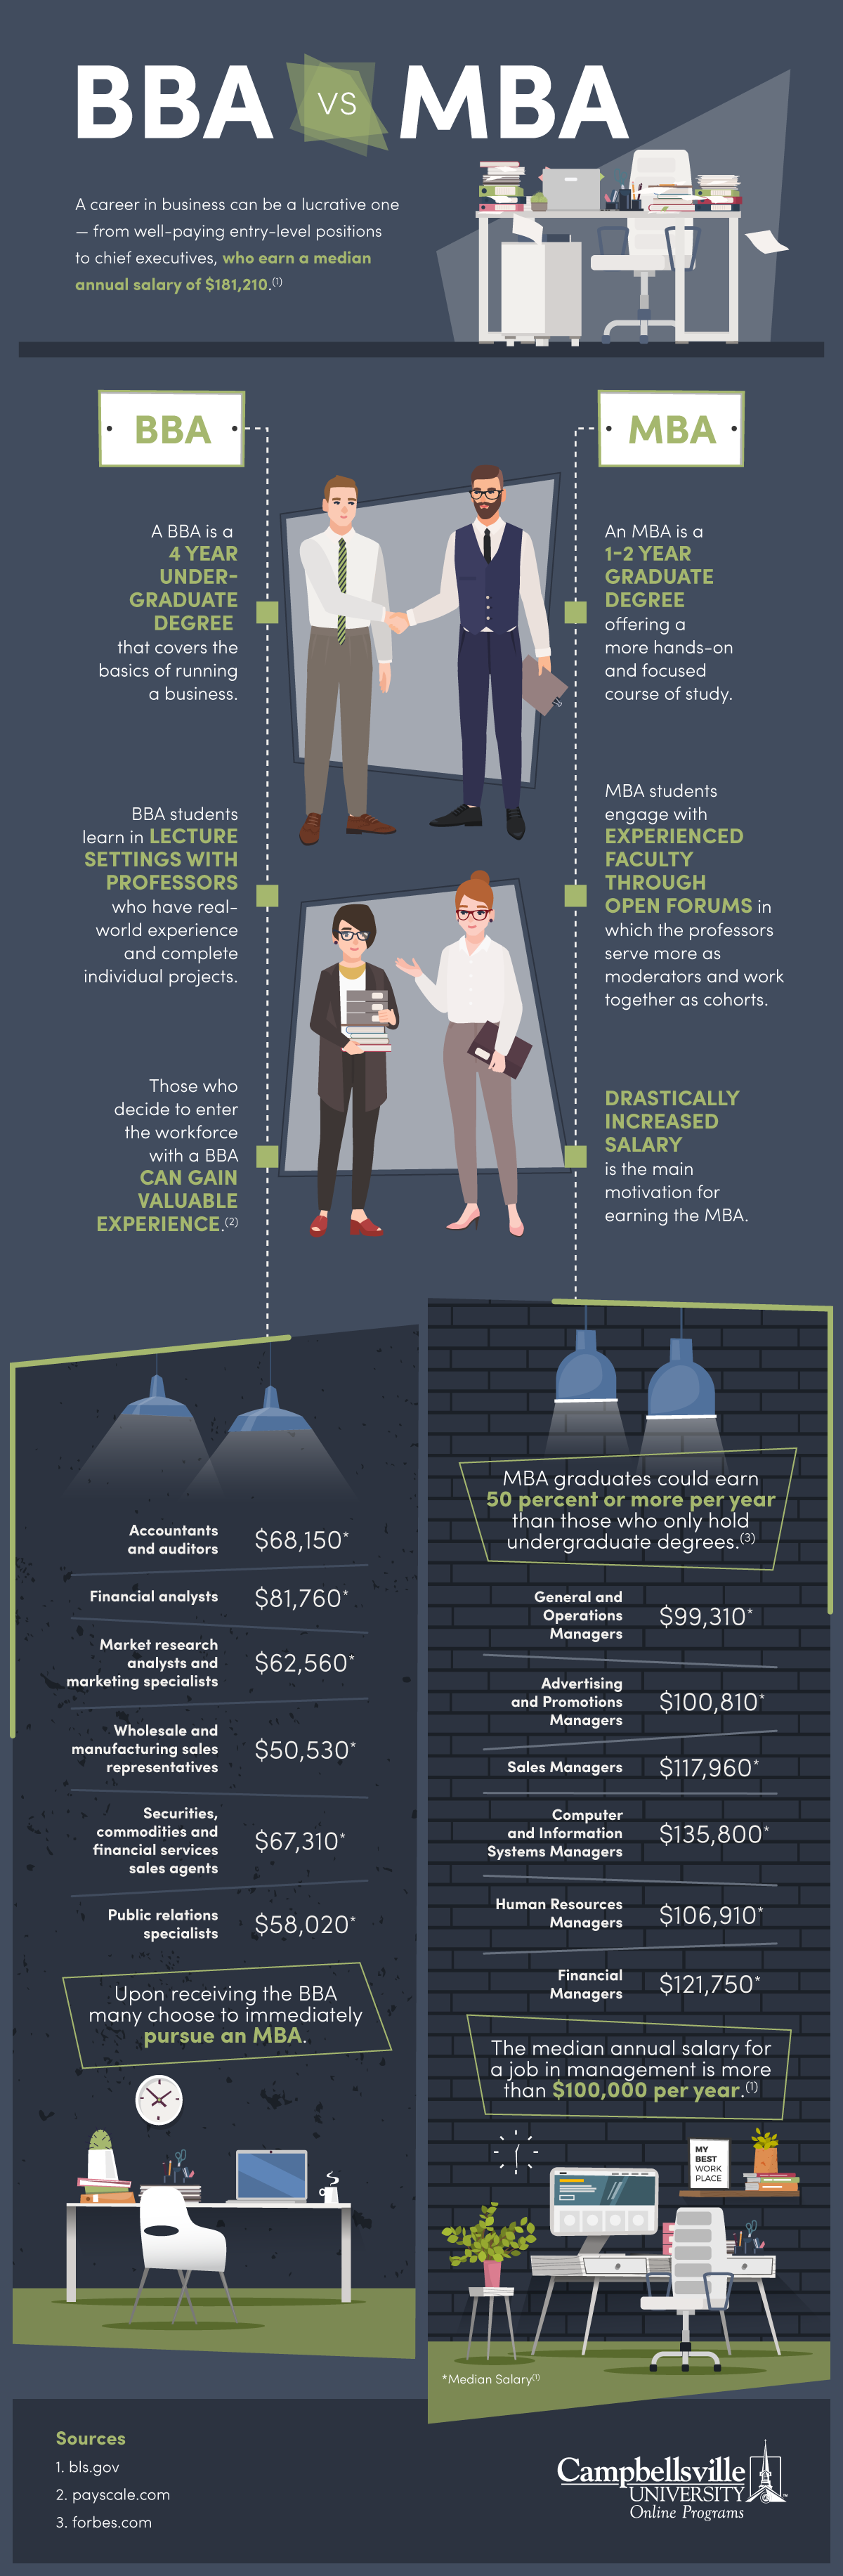 Illustrated infographic detailing the key differences between the BBA and MBA degrees.